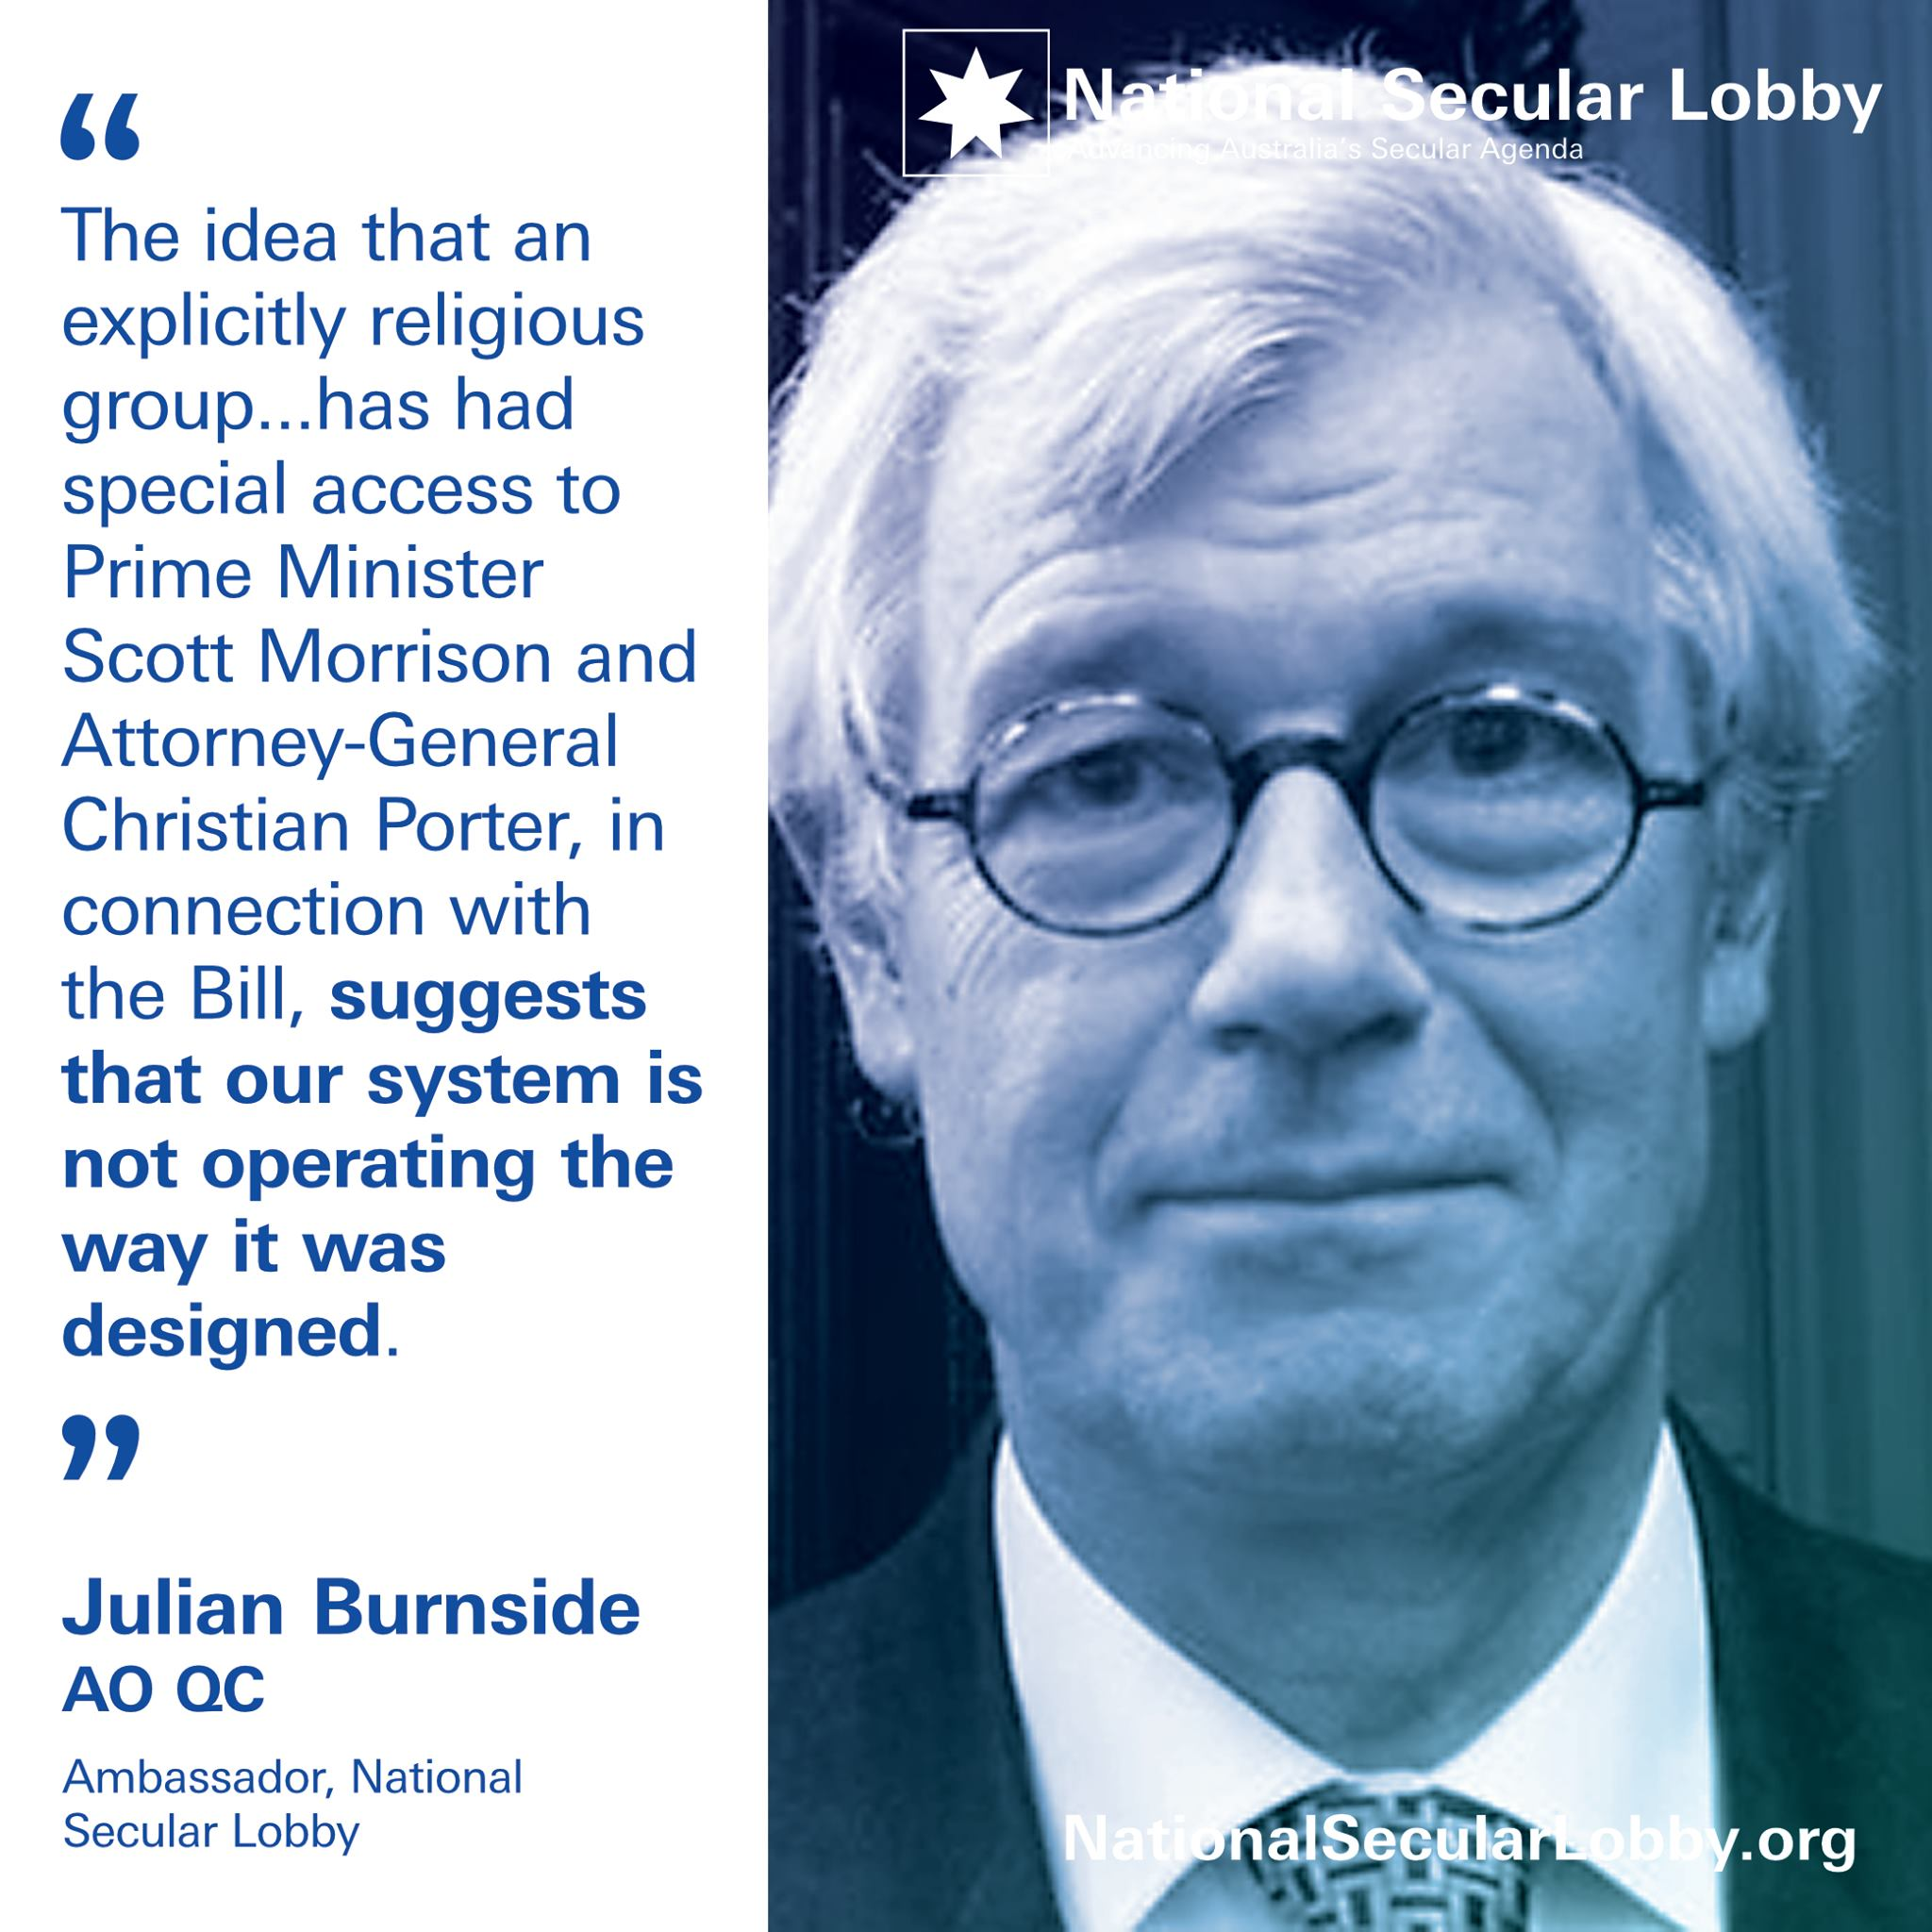 Julian Burnside: Separation of church and state